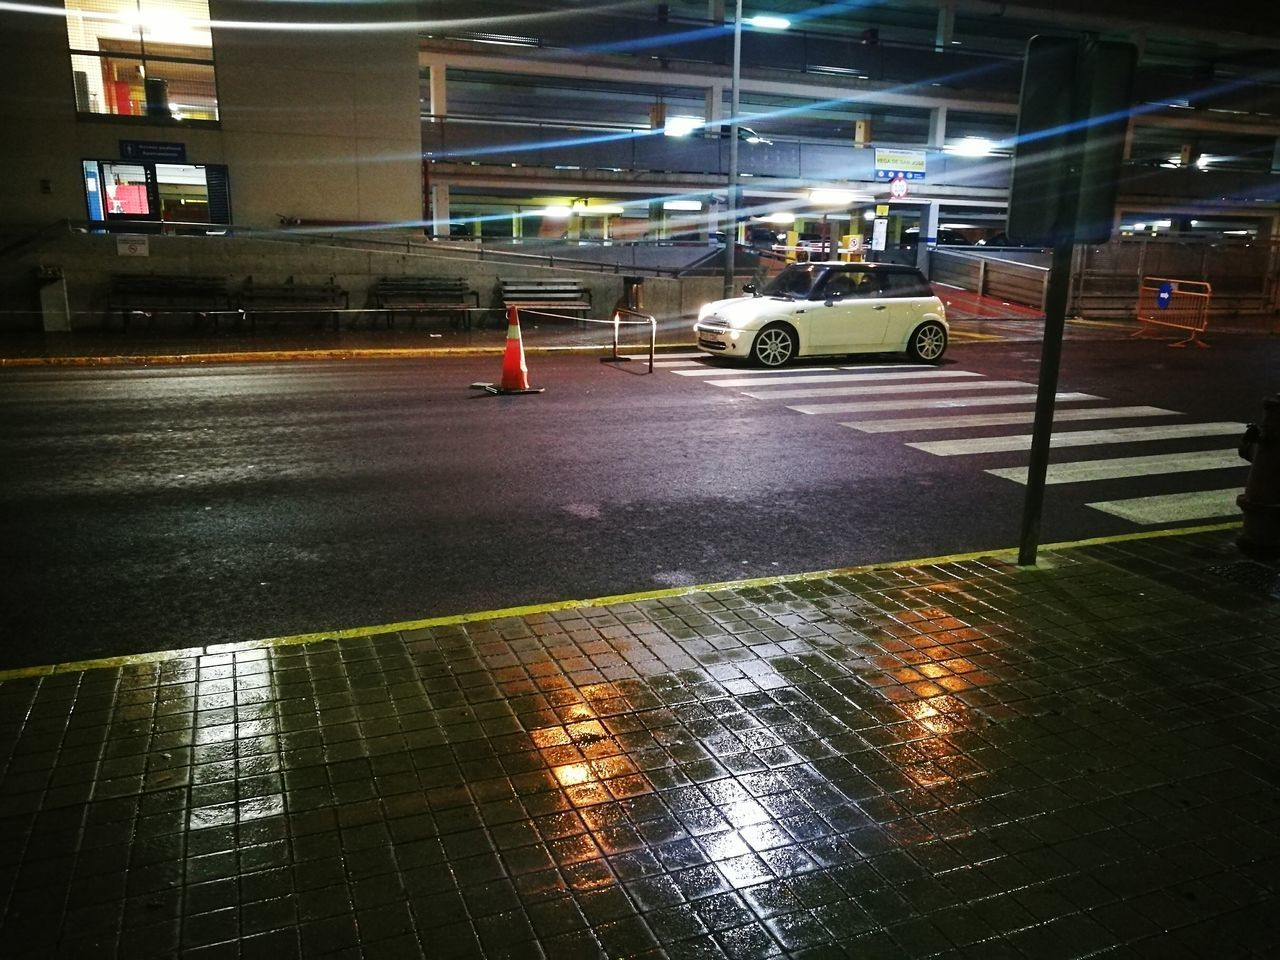 Night Lights Illuminated Transportation Car City Wet Road Night Travel Destinations Outdoors Architecture No People HuaweiP9